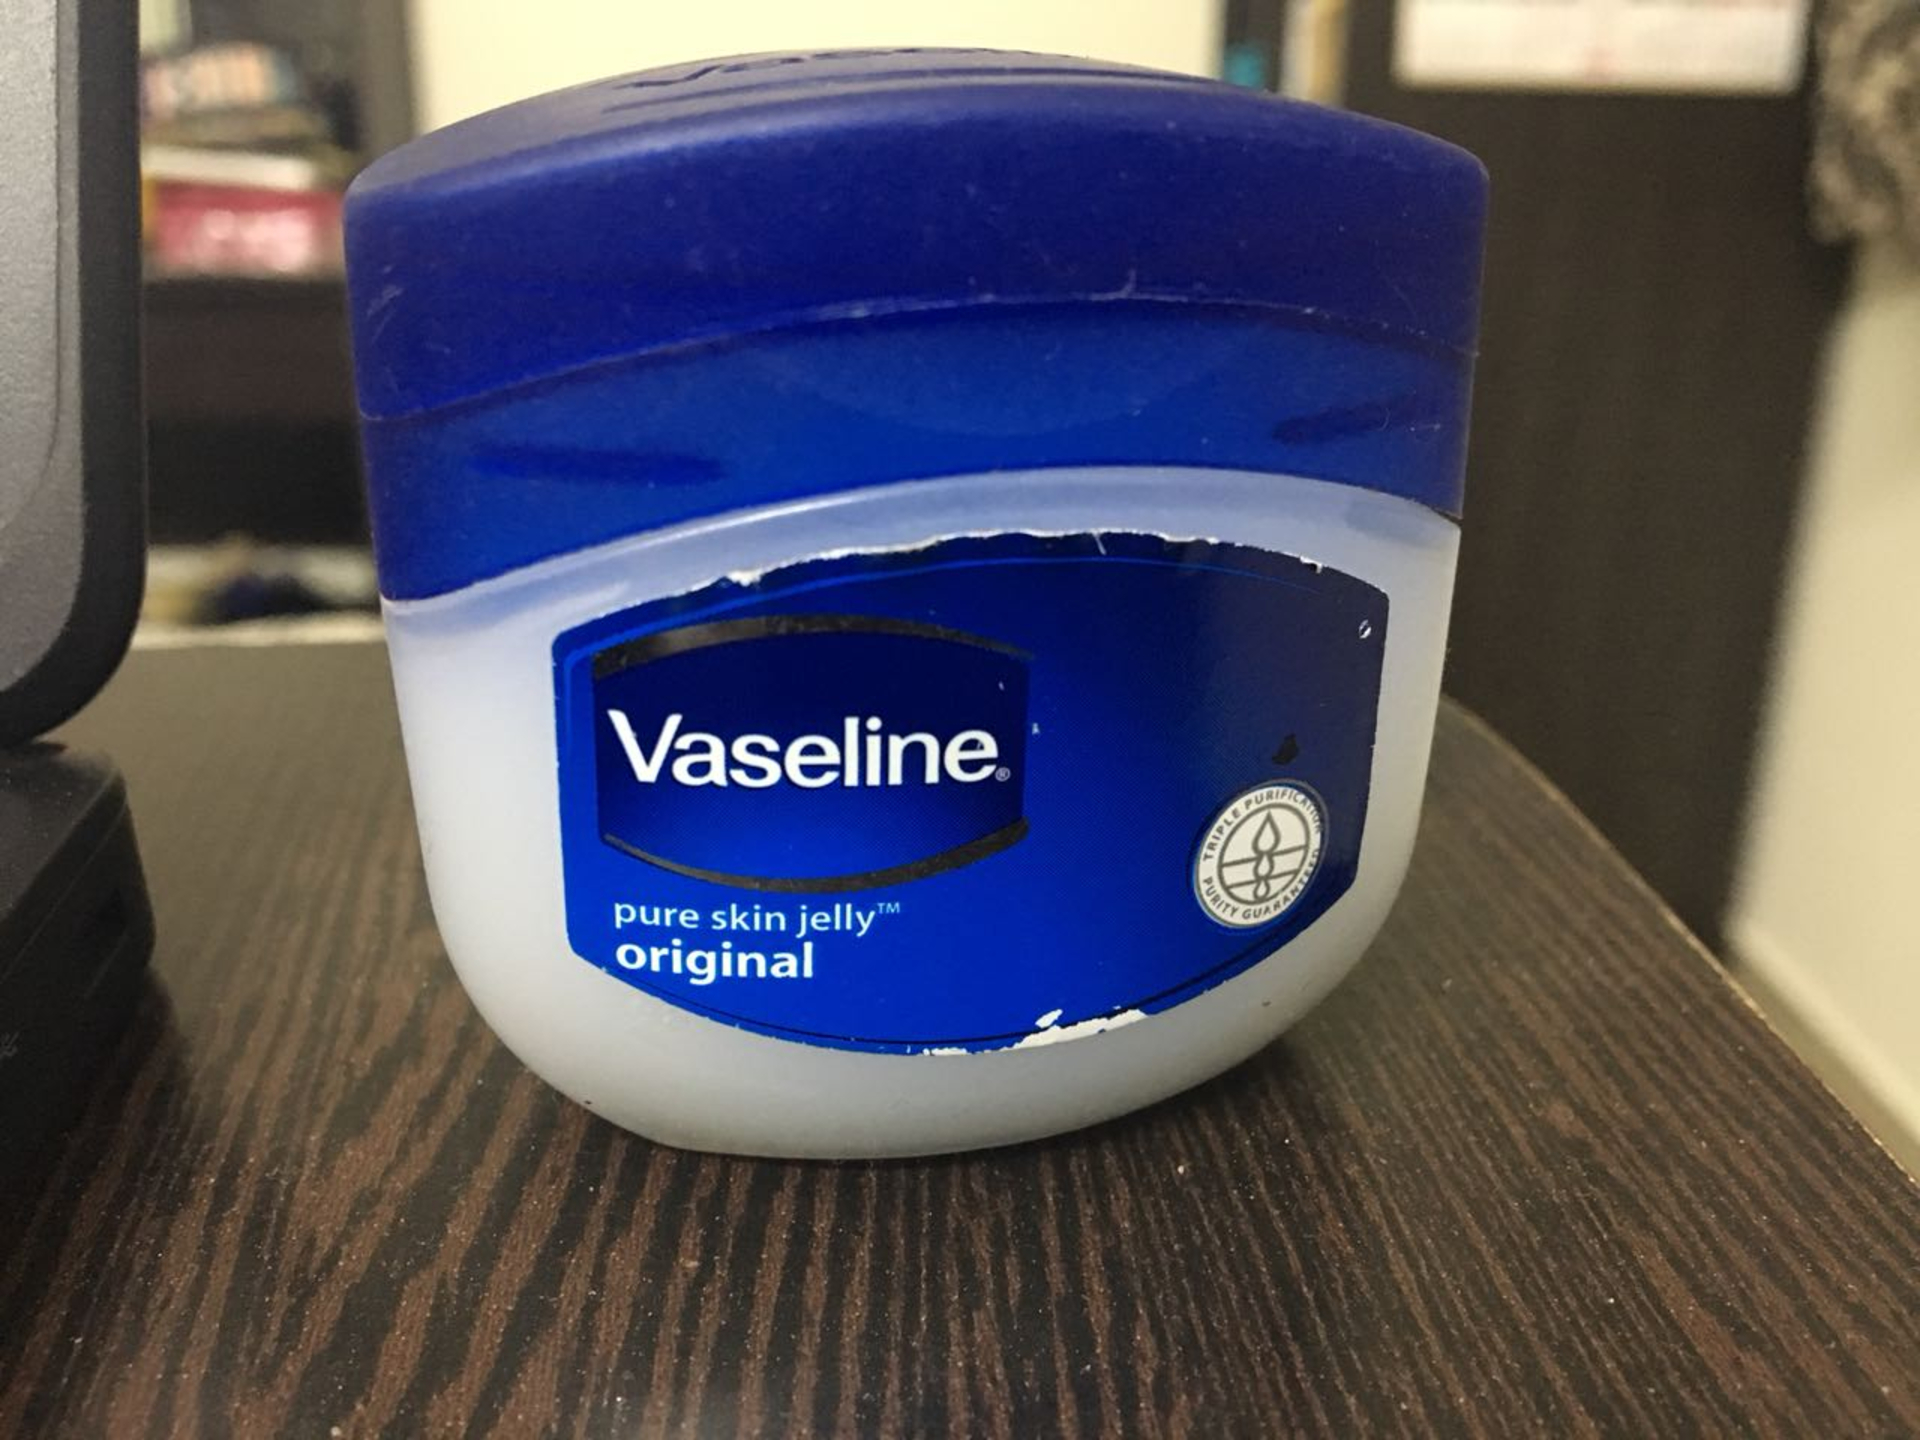 8 Ways You can Use Vaseline  image